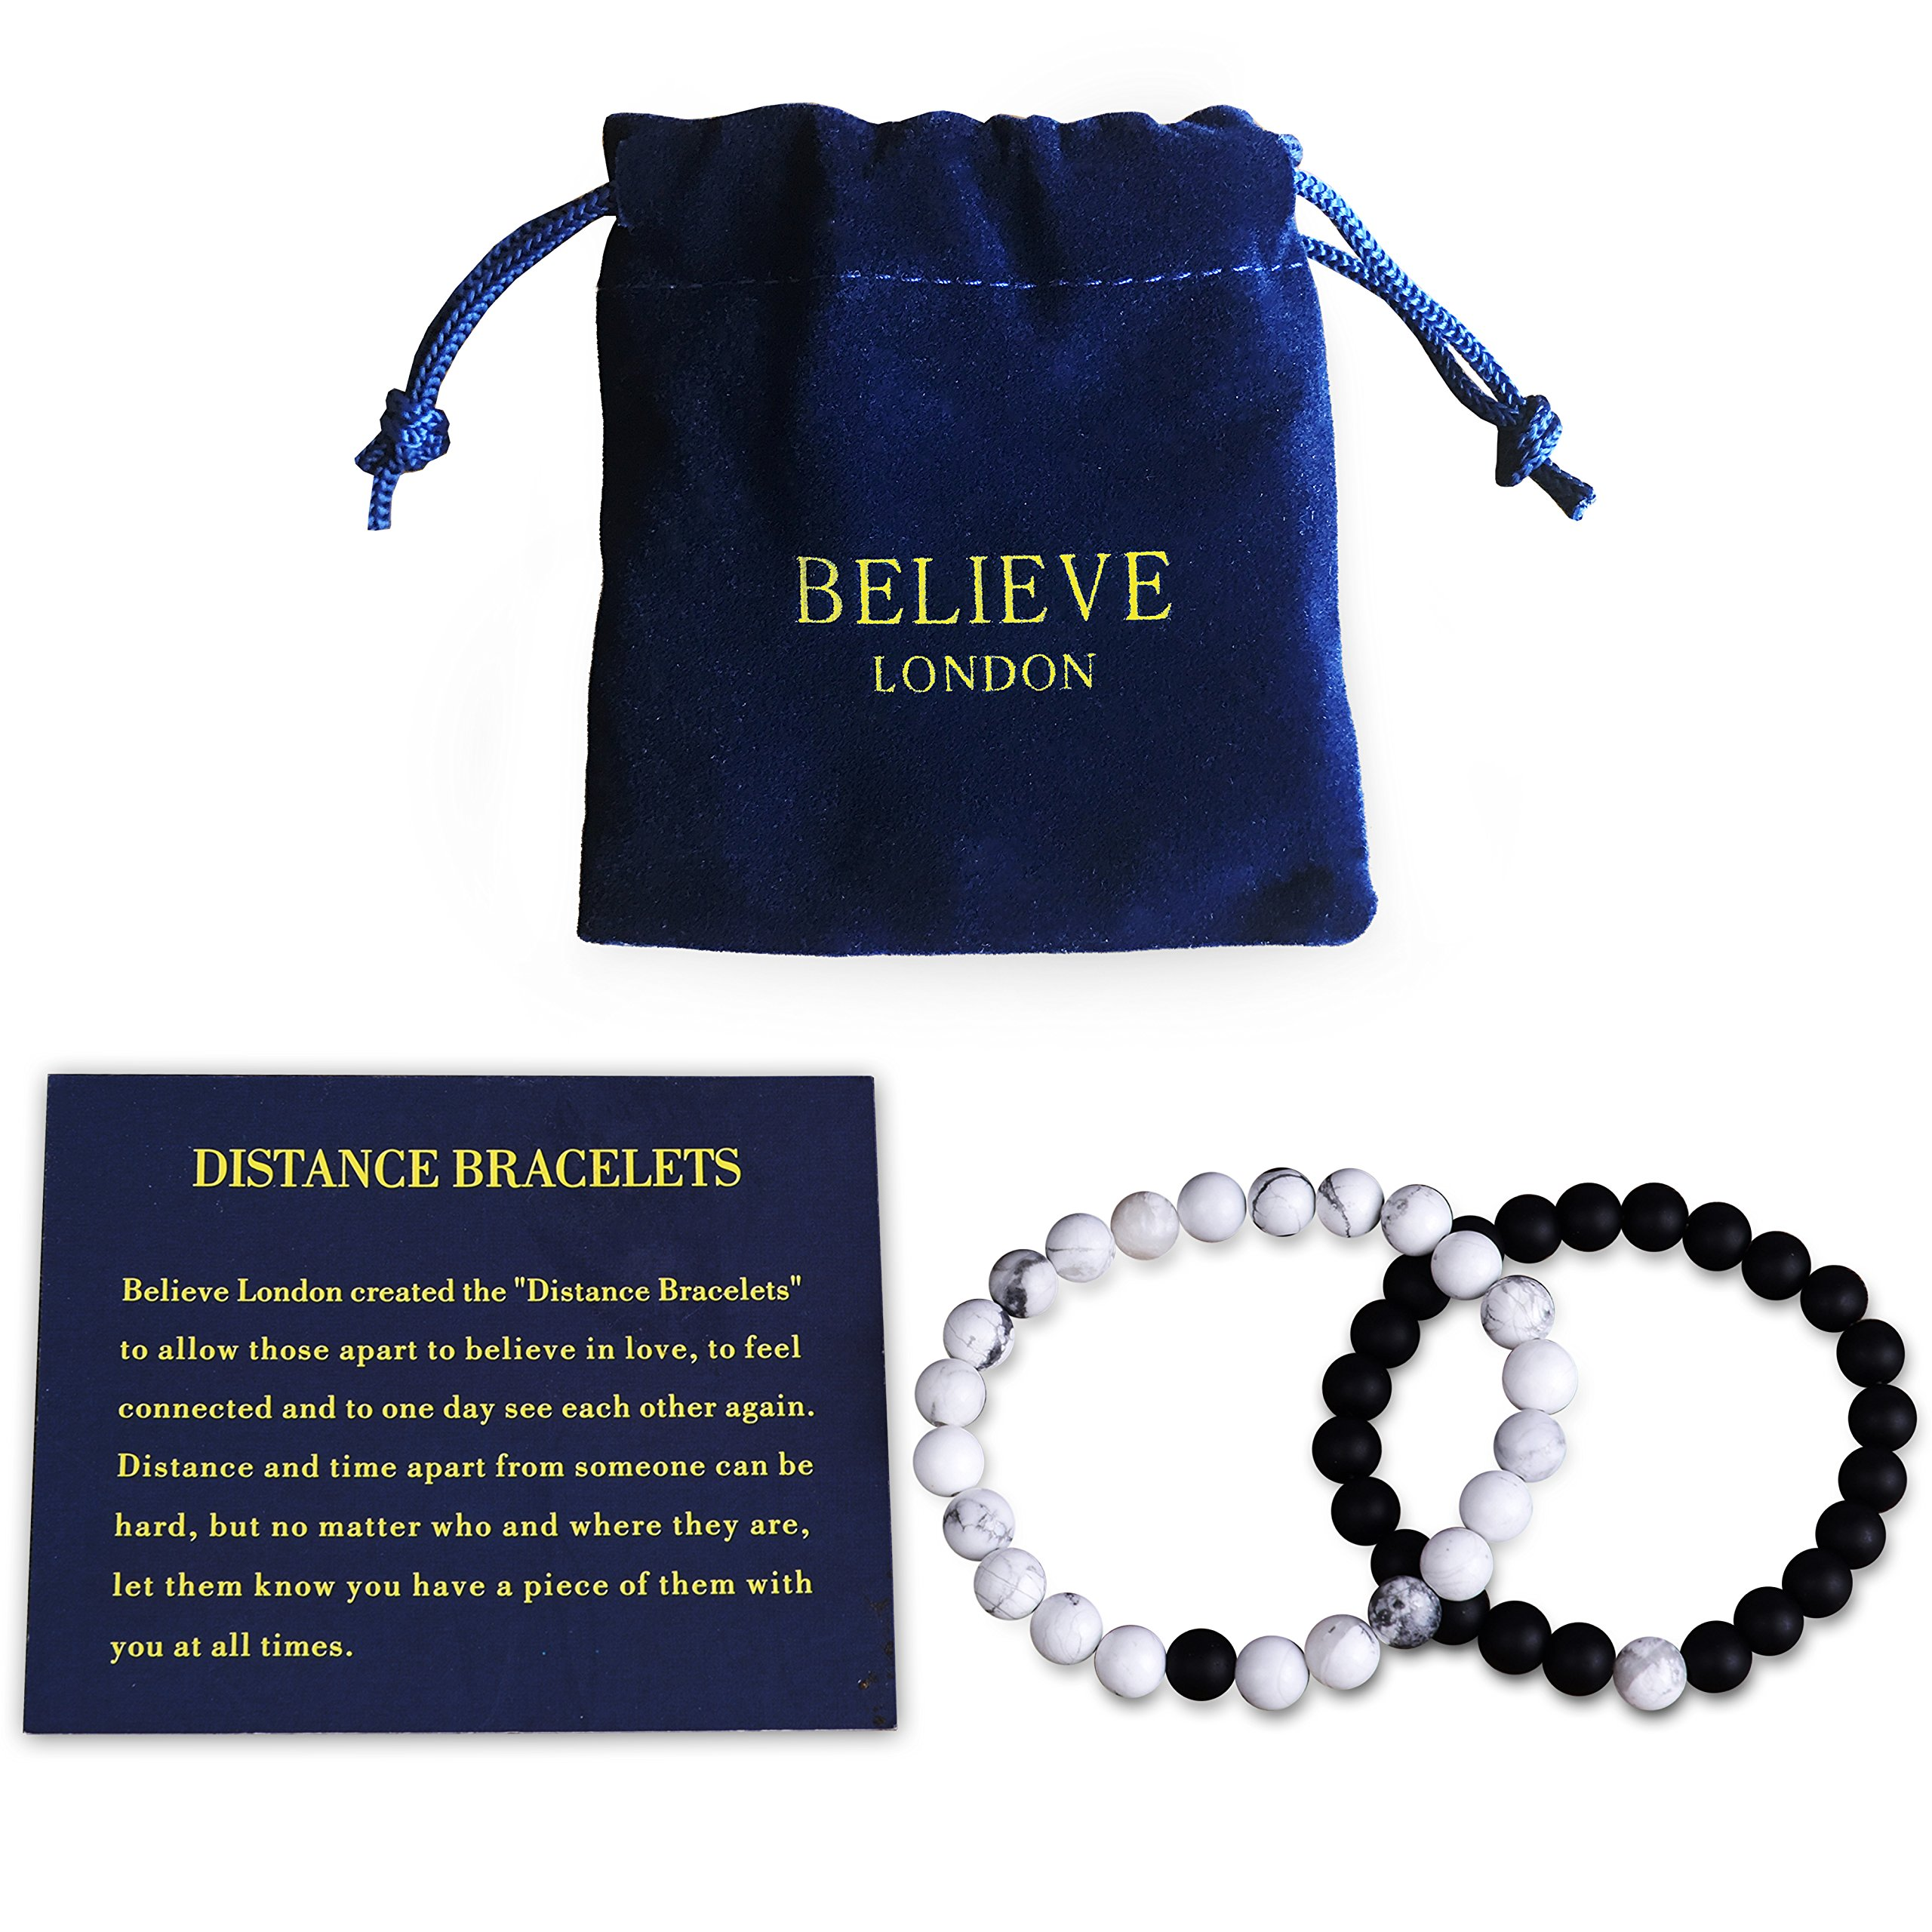 Believe London Distance Bracelets with Jewelry Bag & Meaning Card | Strong Elastic | Friendship Relationship Couples His Hers | Black Agate Onyx White Howlite Bracelet (Adjustable Length Black Chain)